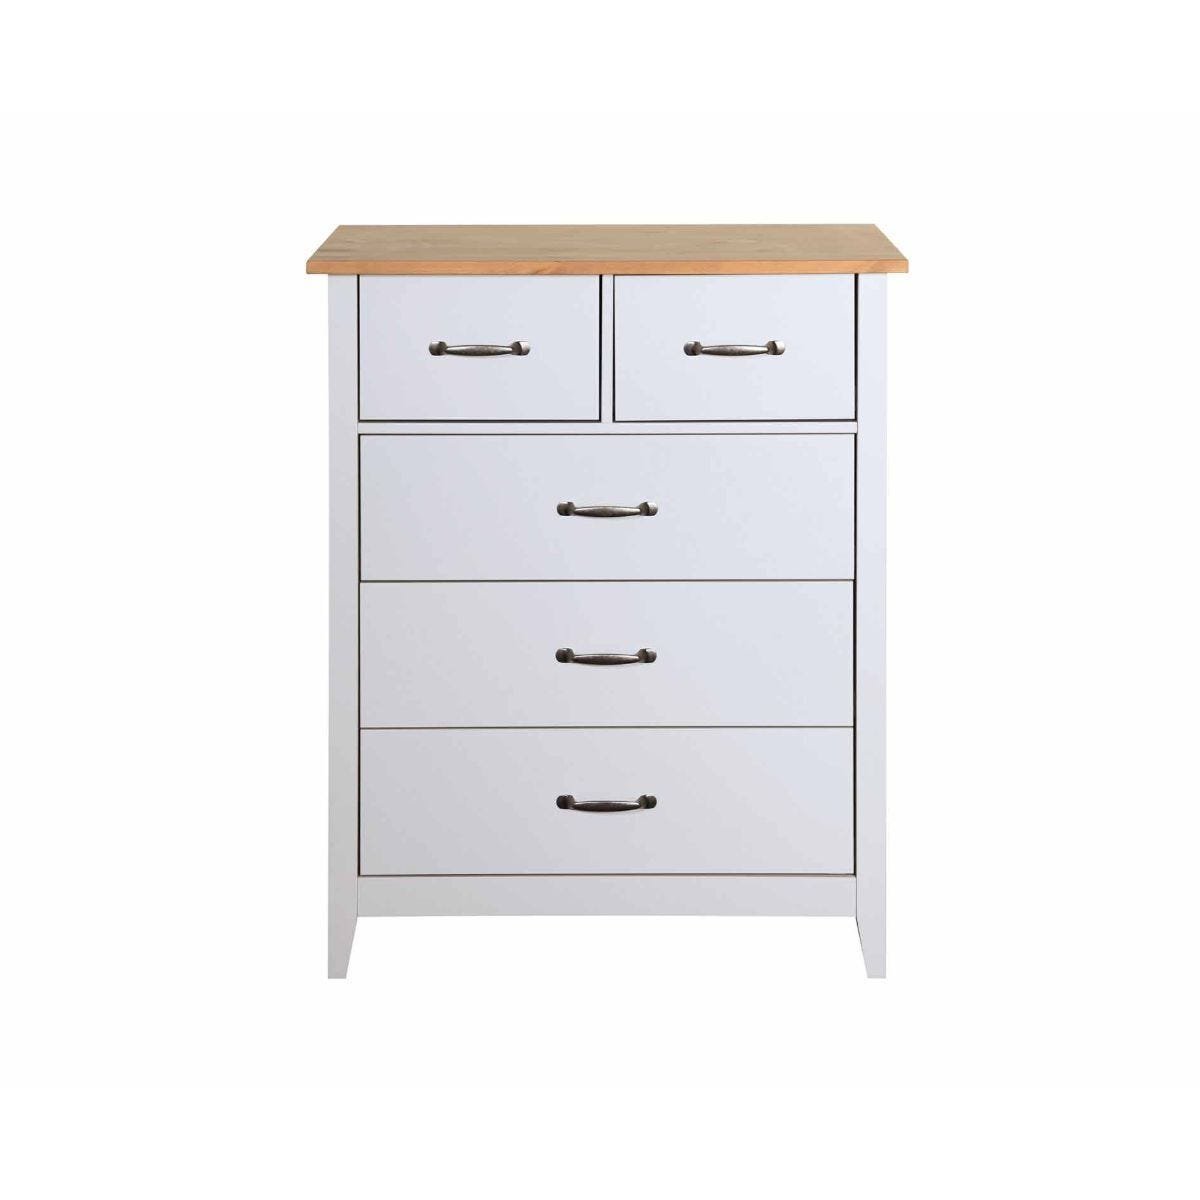 Steens Norfolk 2 Over 3 Drawer Chest Grey and Pine